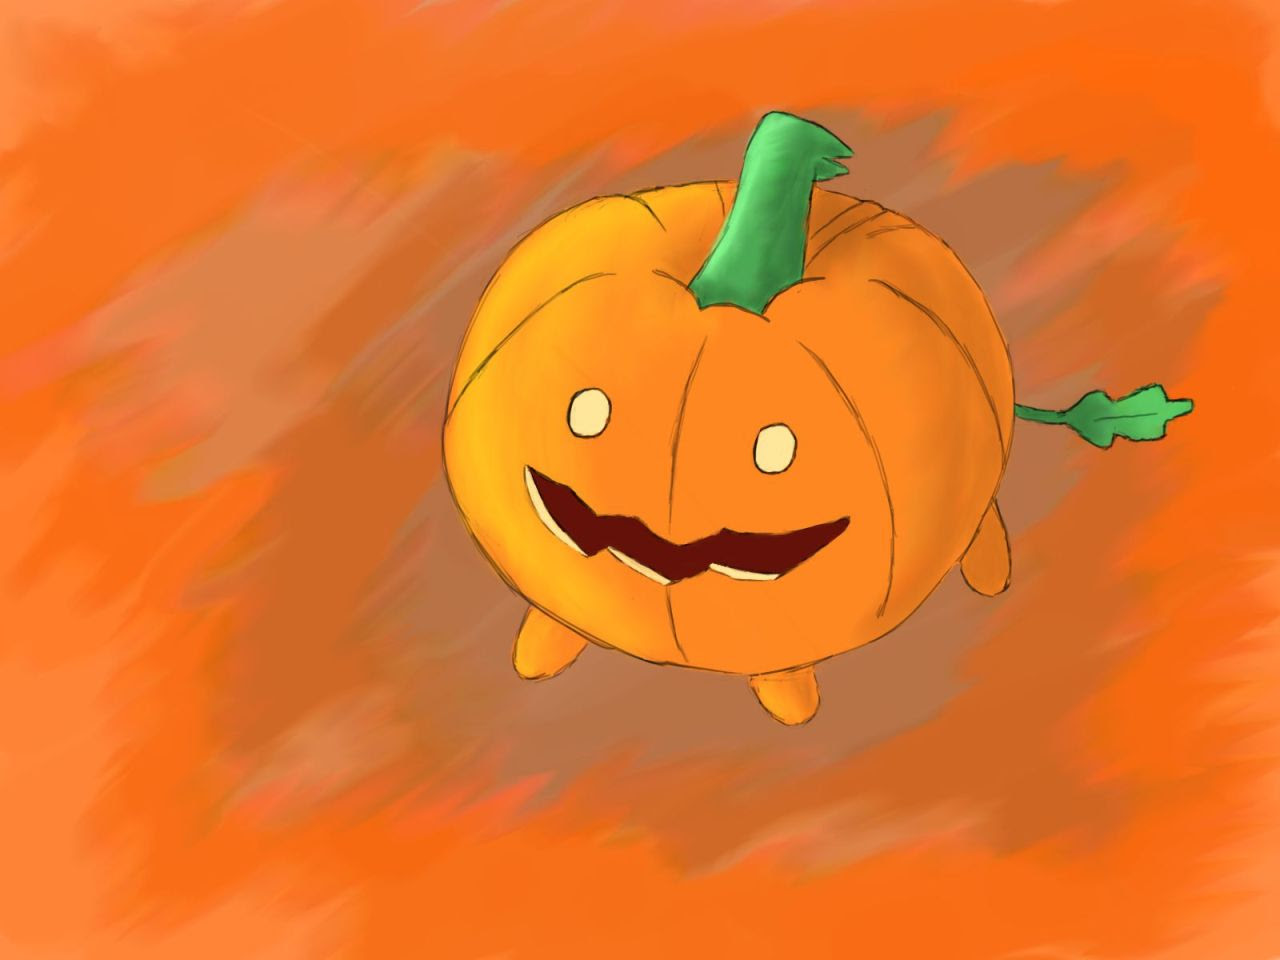 In honour of the release of Gem Harvest. Here's some pumpkin dog:)